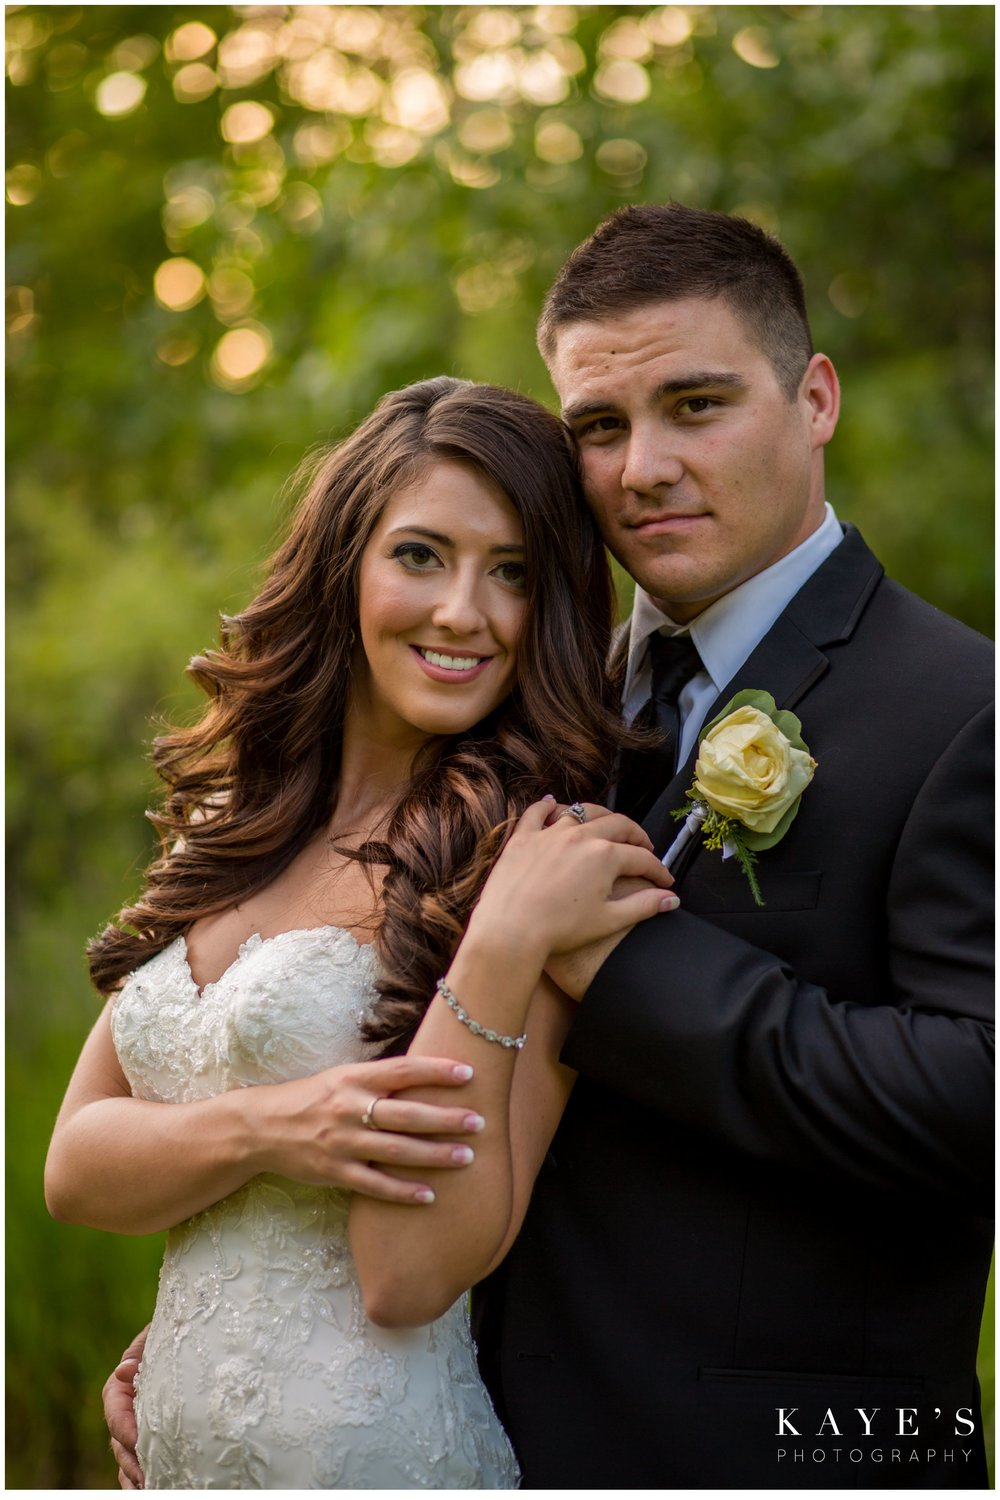 Kayes Photography- howell-michigan-wedding-photographer_0712.jpg